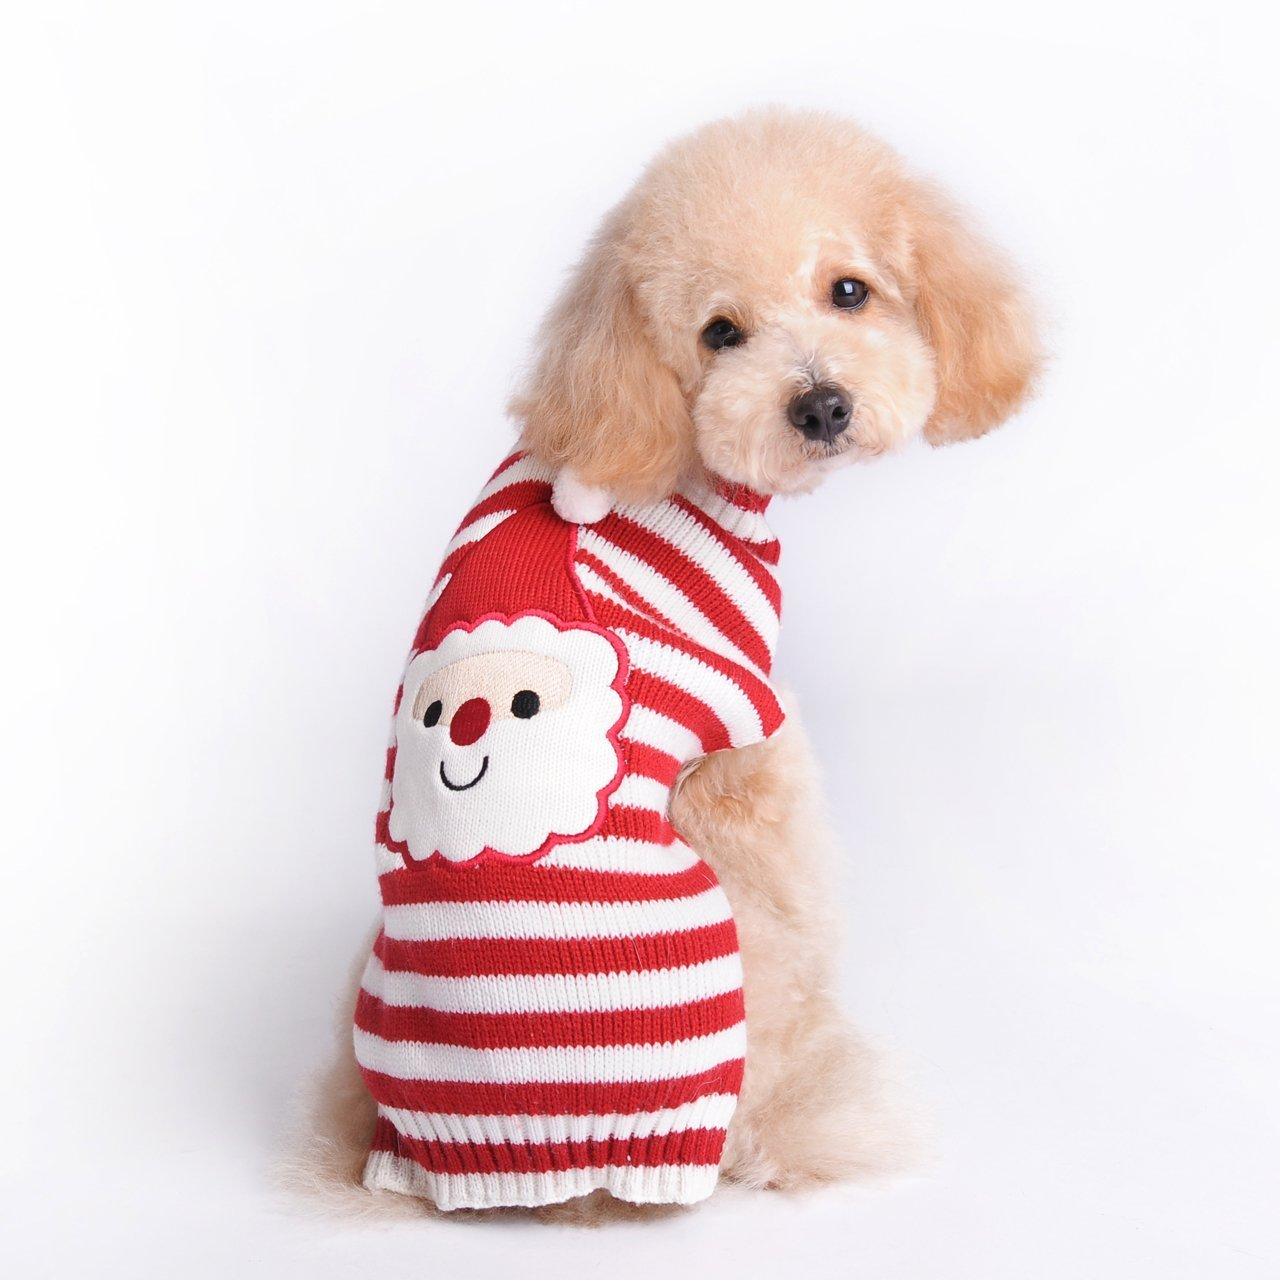 Menpet Pet Holiday Christmas Santa Claus Dog Sweater by Menpet MPT-0101-S